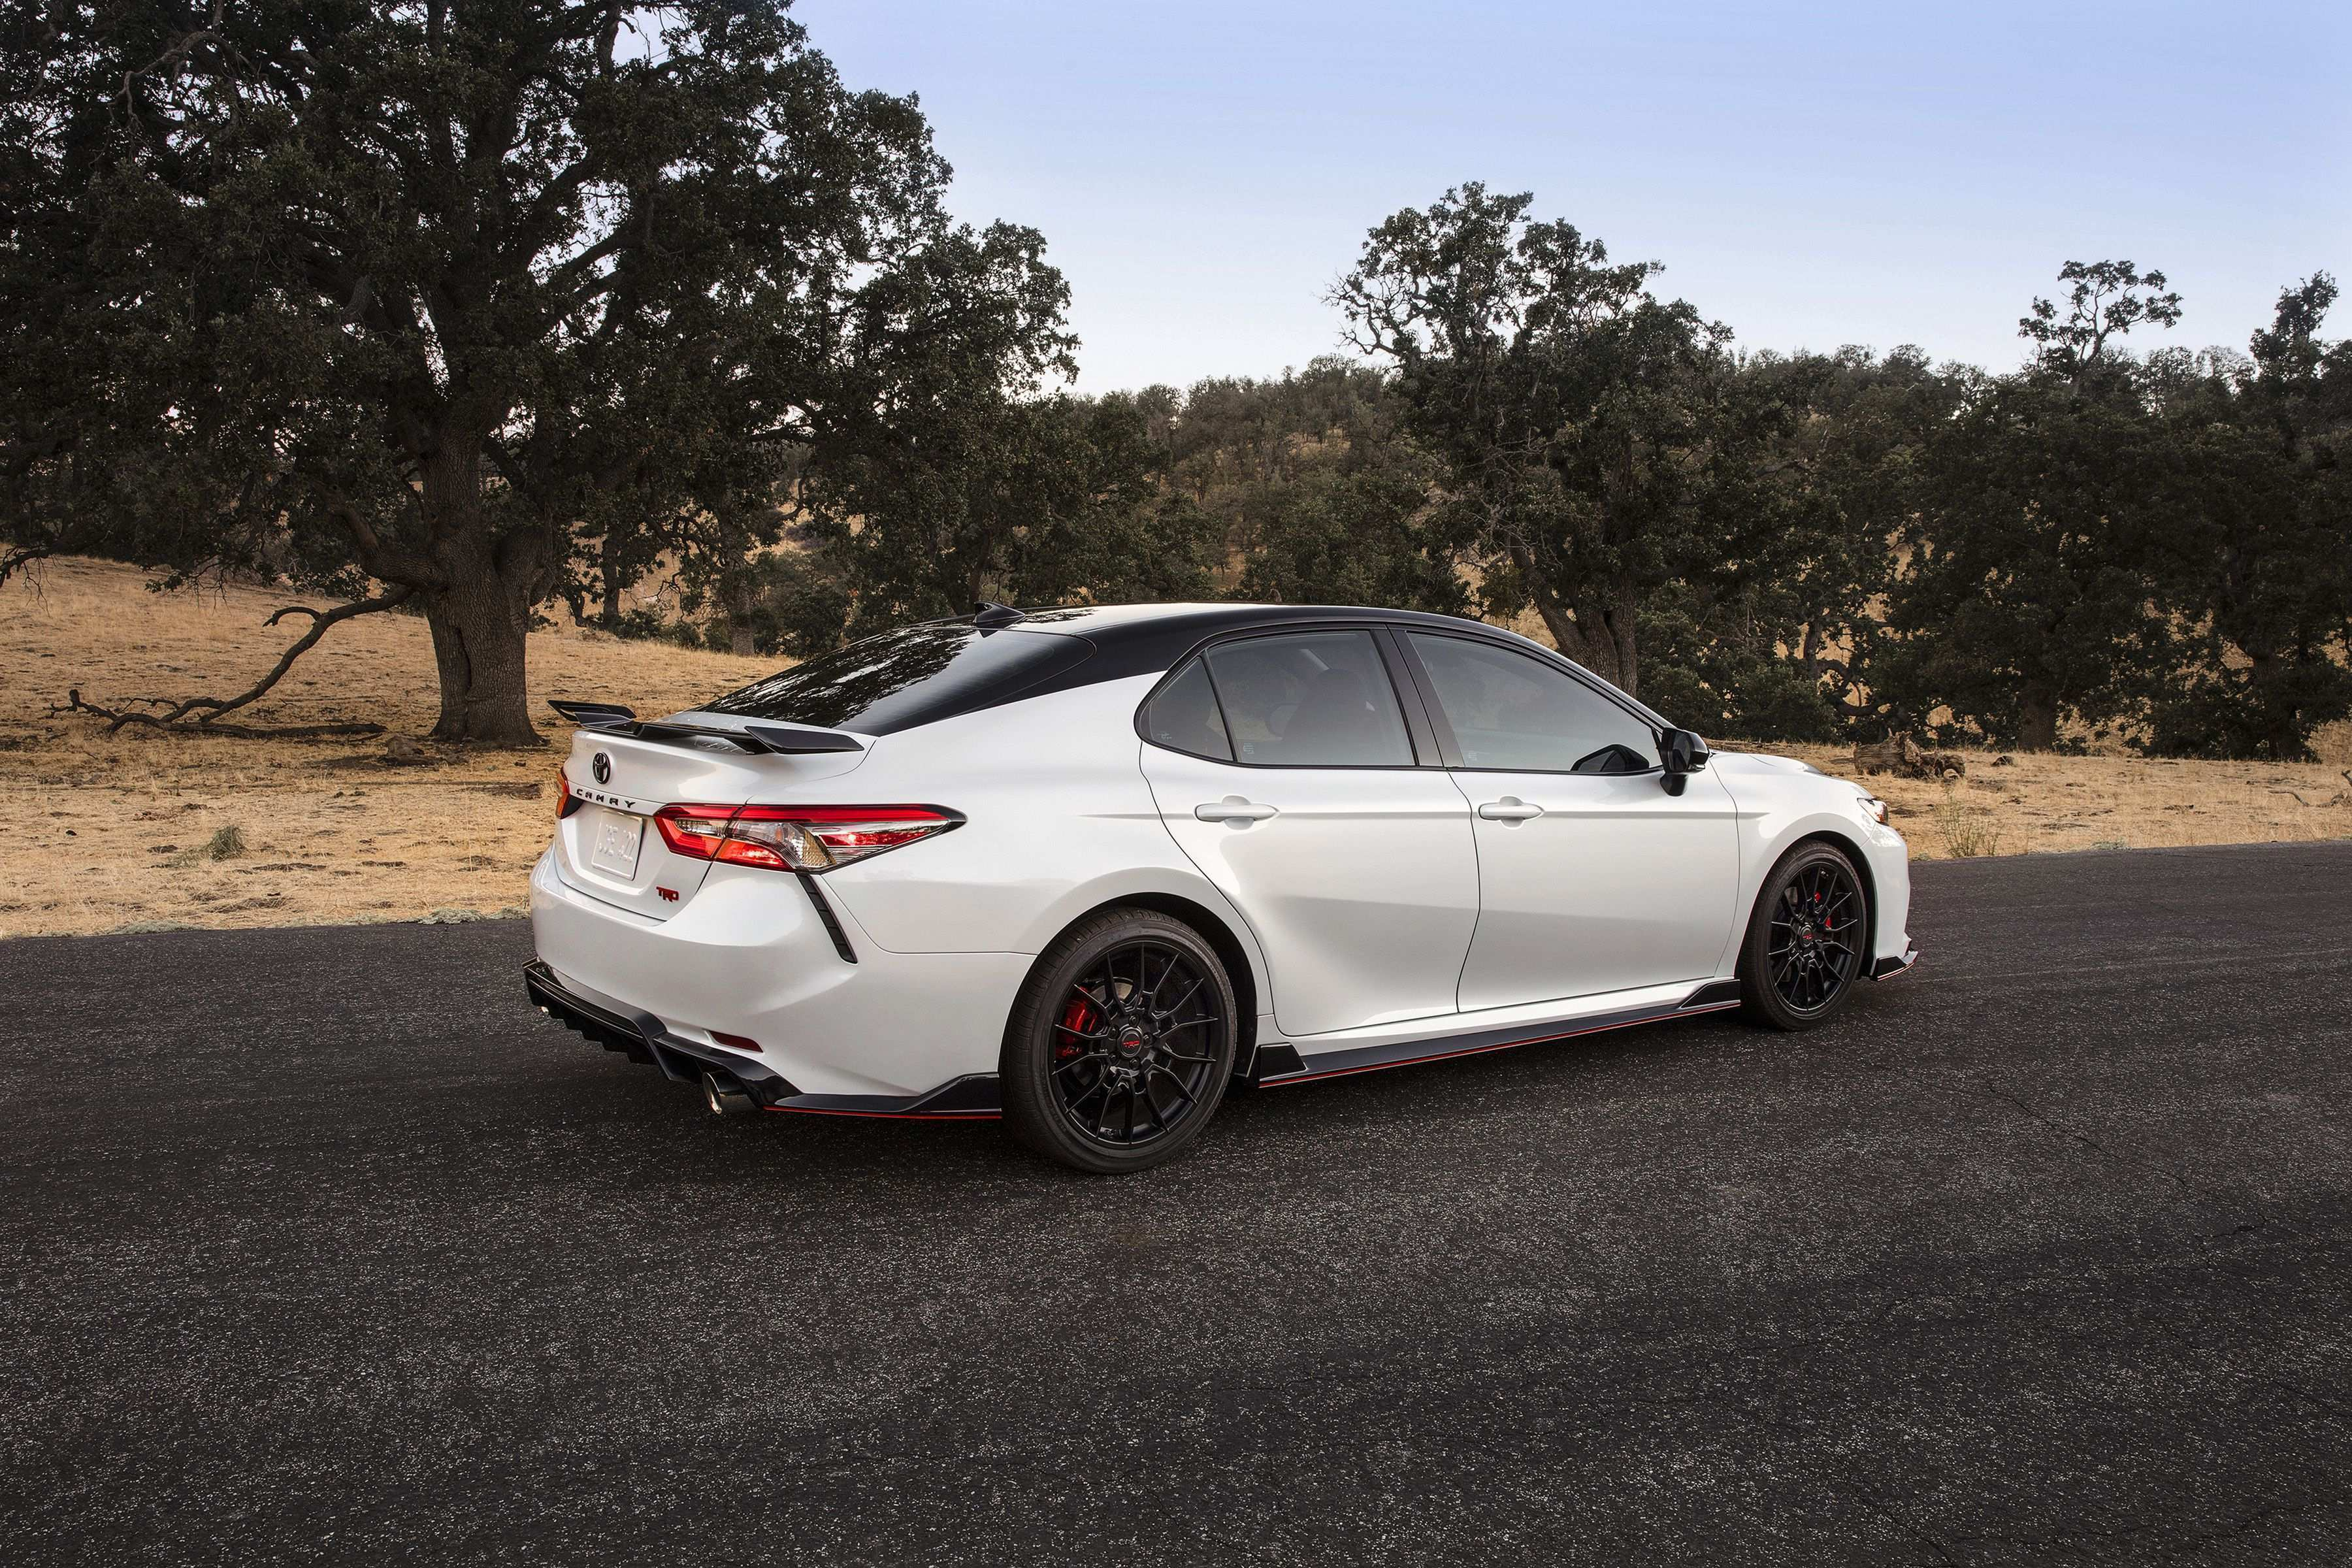 47 All New 2020 Toyota Camry Images by 2020 Toyota Camry